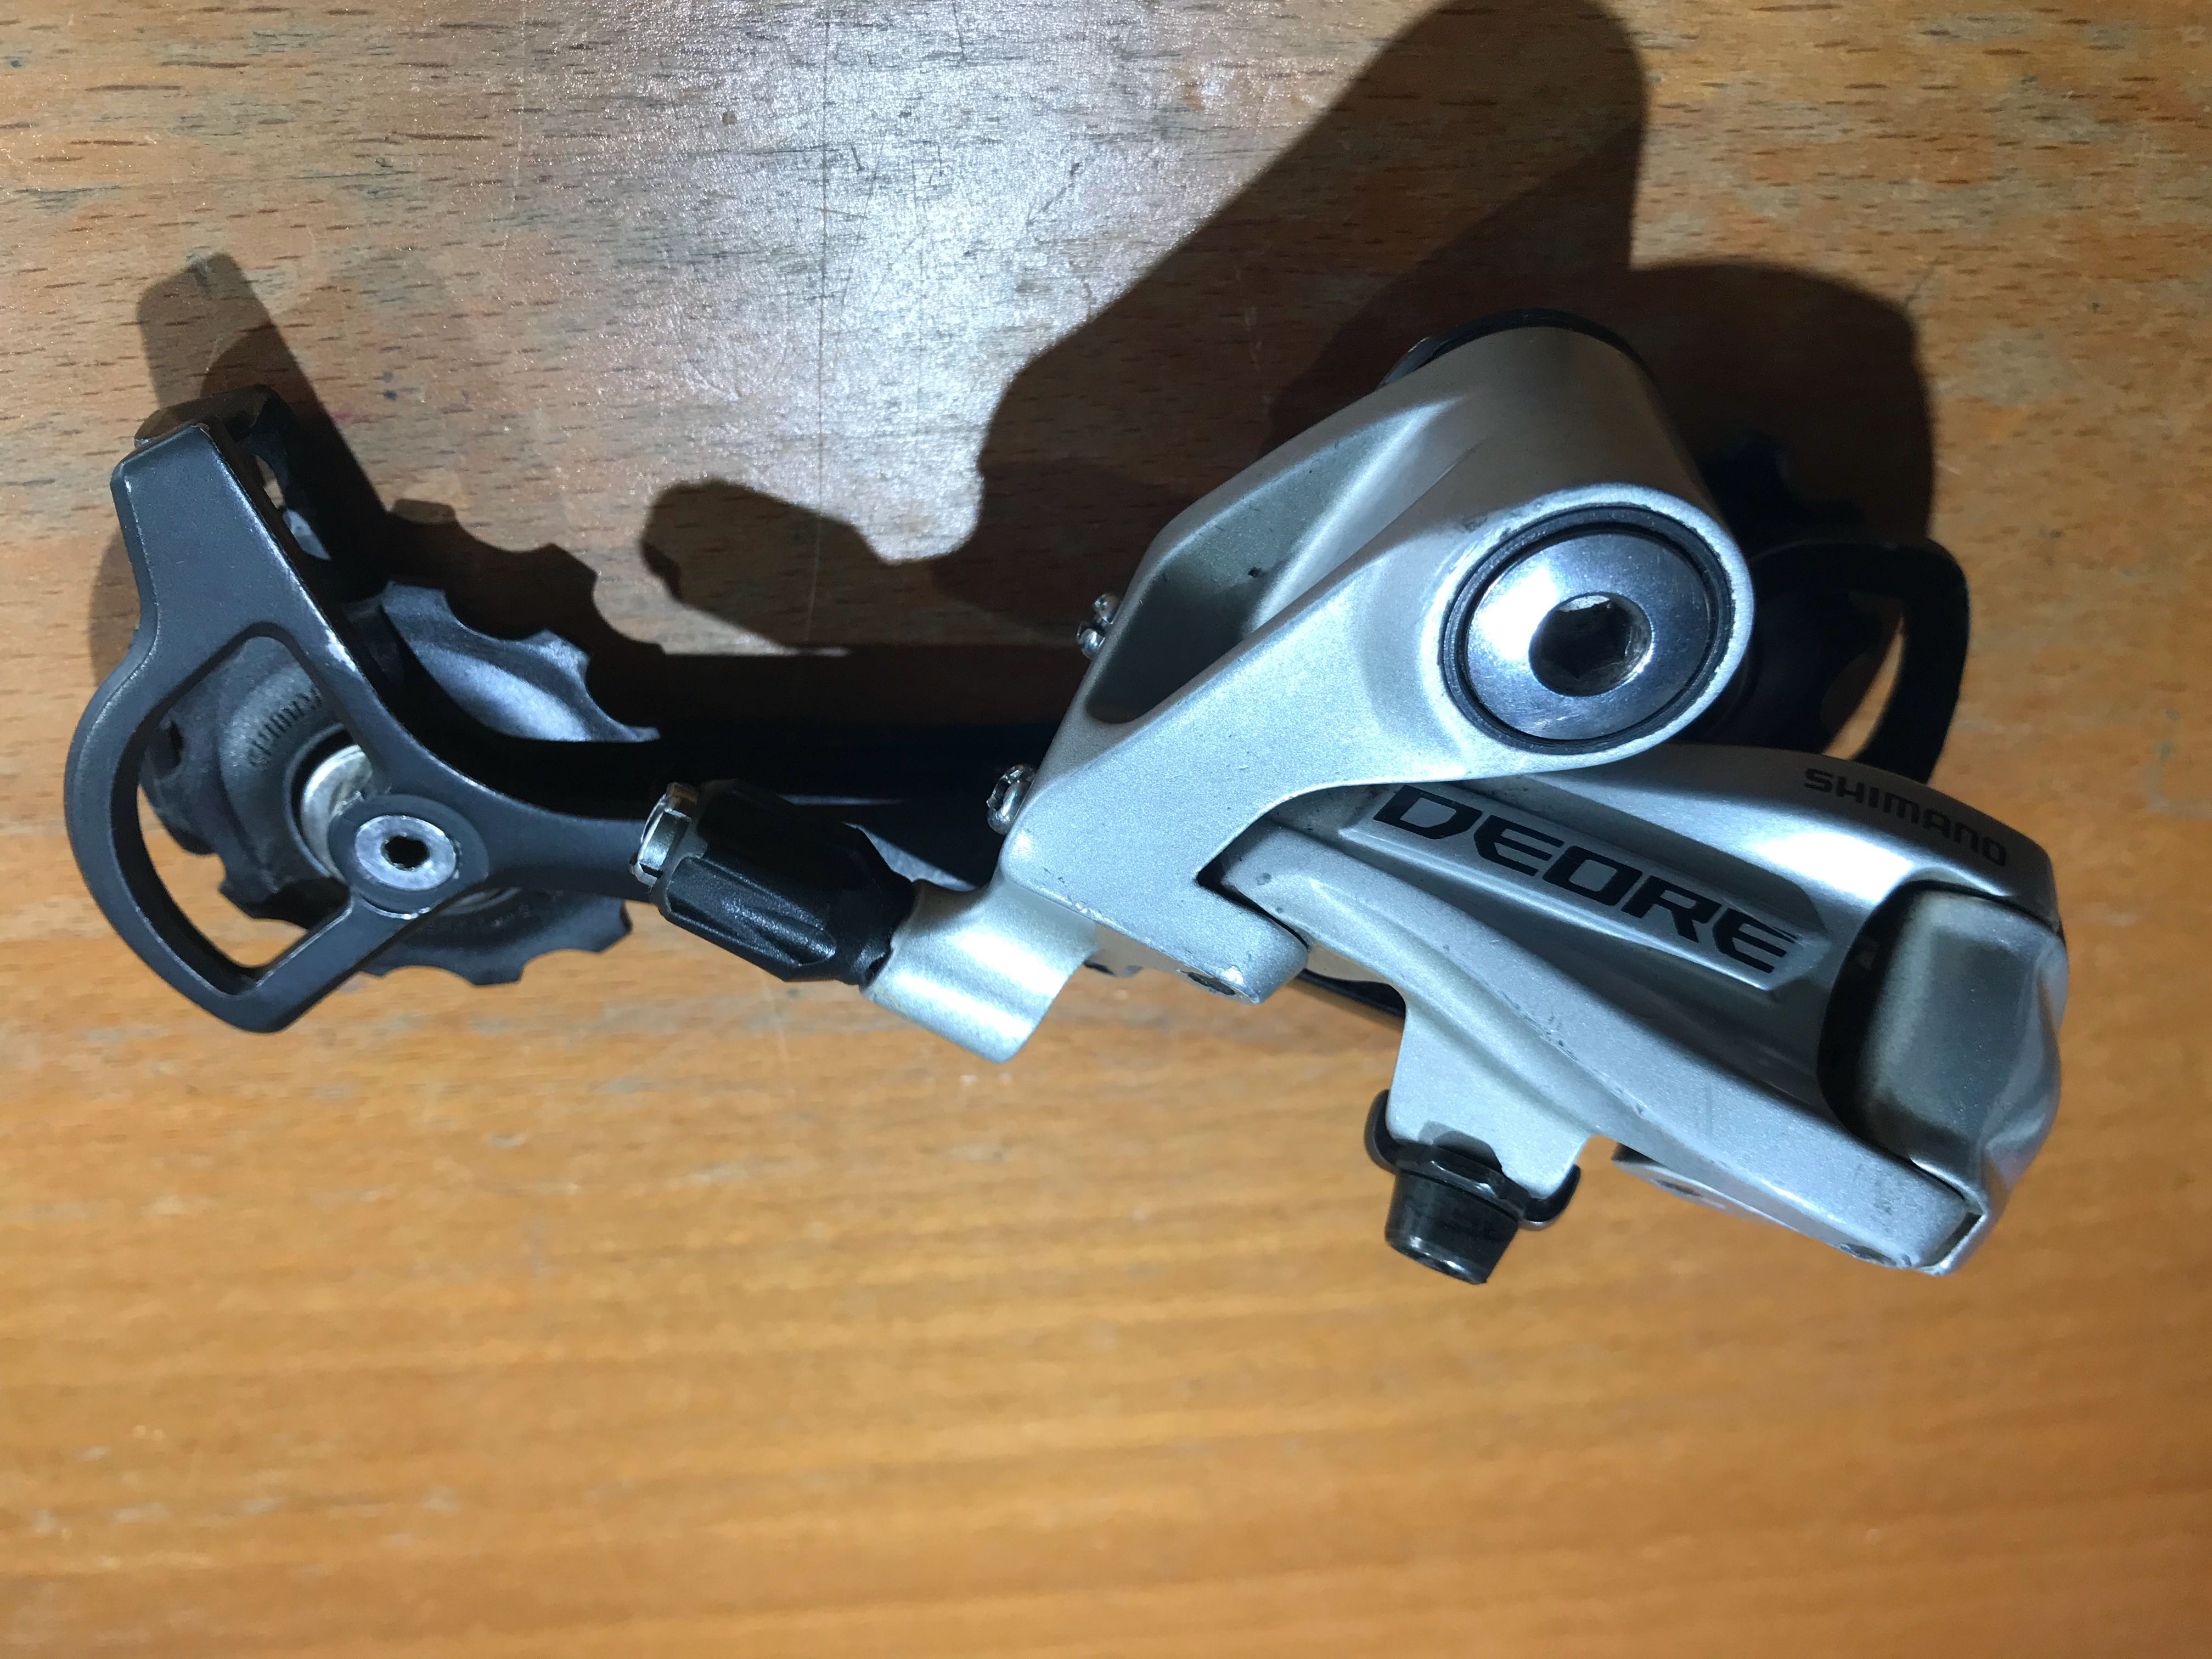 Shimano Deore M591SGS 9-speed Rear Derailleur (8 and 9 Speed/Compatible  with 28-24T low sprocket)